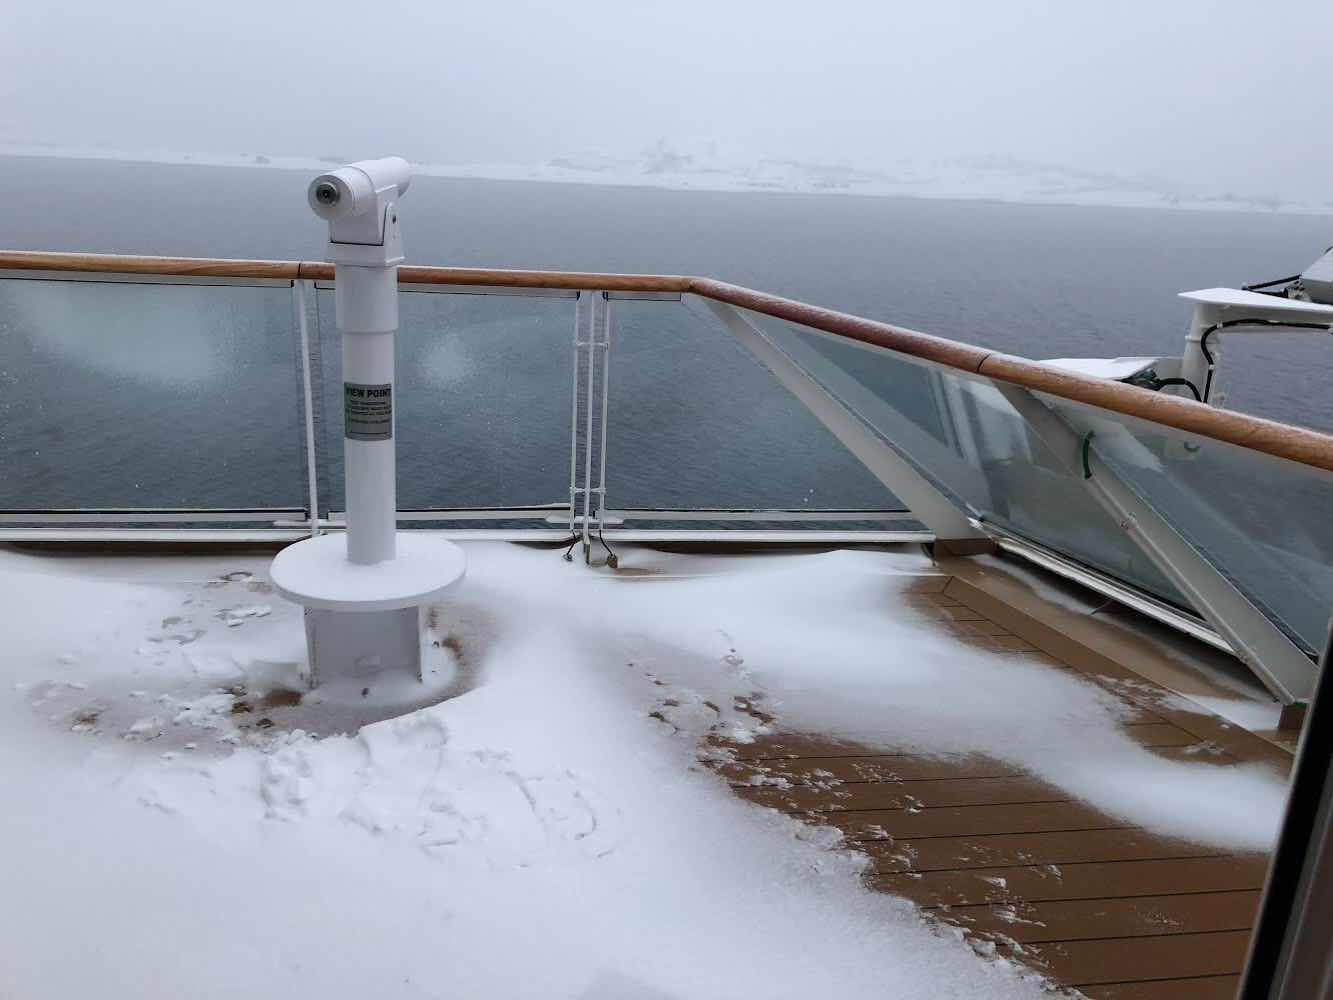 Snow on deck of the Viking Sky as we approach the Arctic Circle (Source: Palmia Observatory)